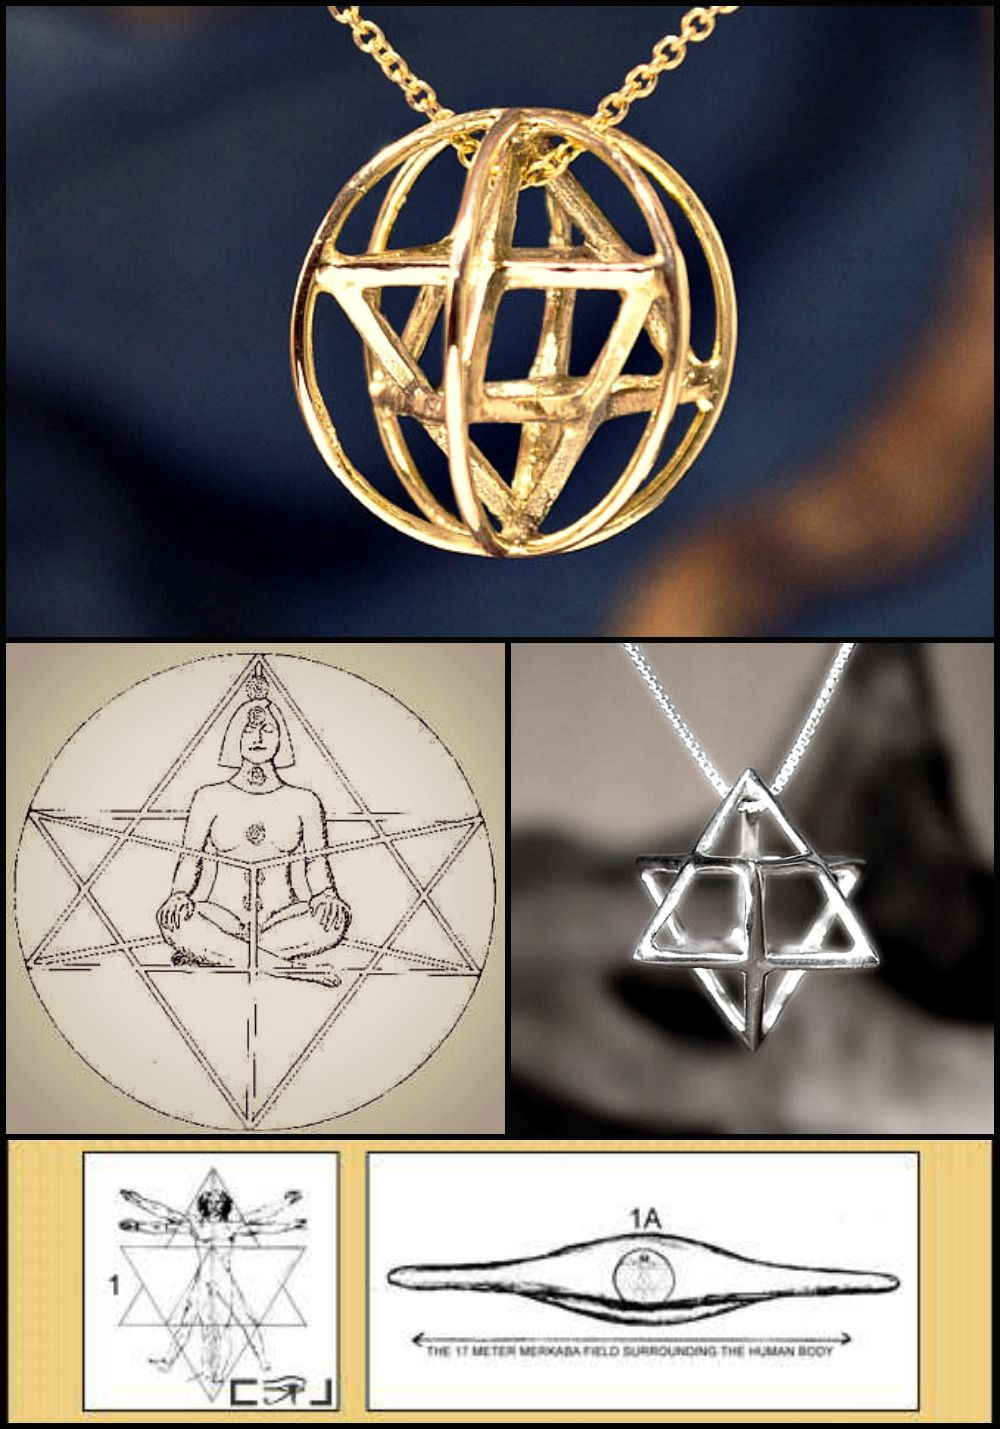 The Merkaba Is A Star Tetrahedron A Three Dimensional 8 Pointed